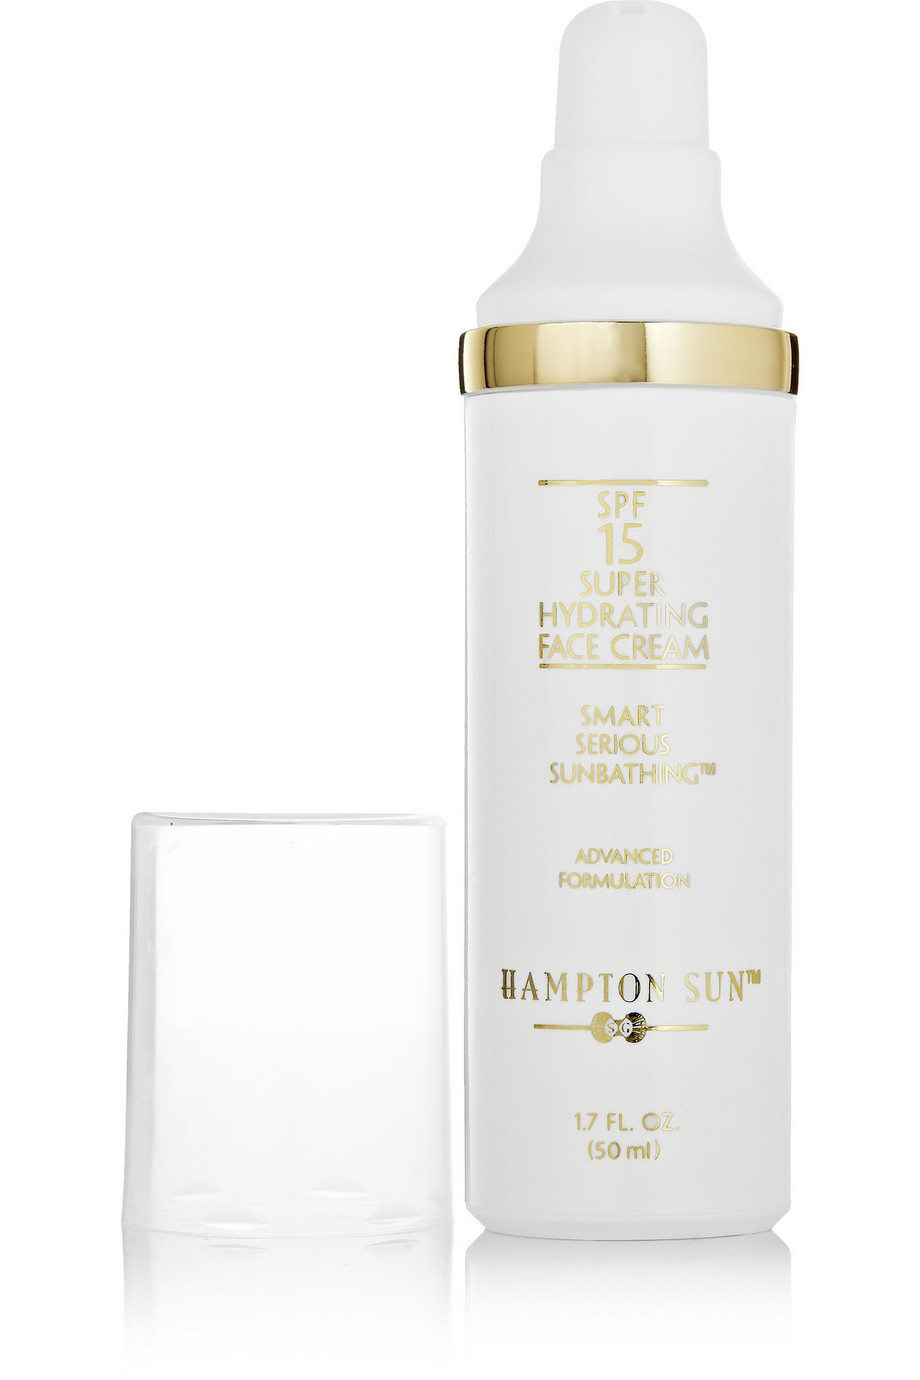 Hampton Sun SPF15 Super Hydrating Face Cream, 50ml